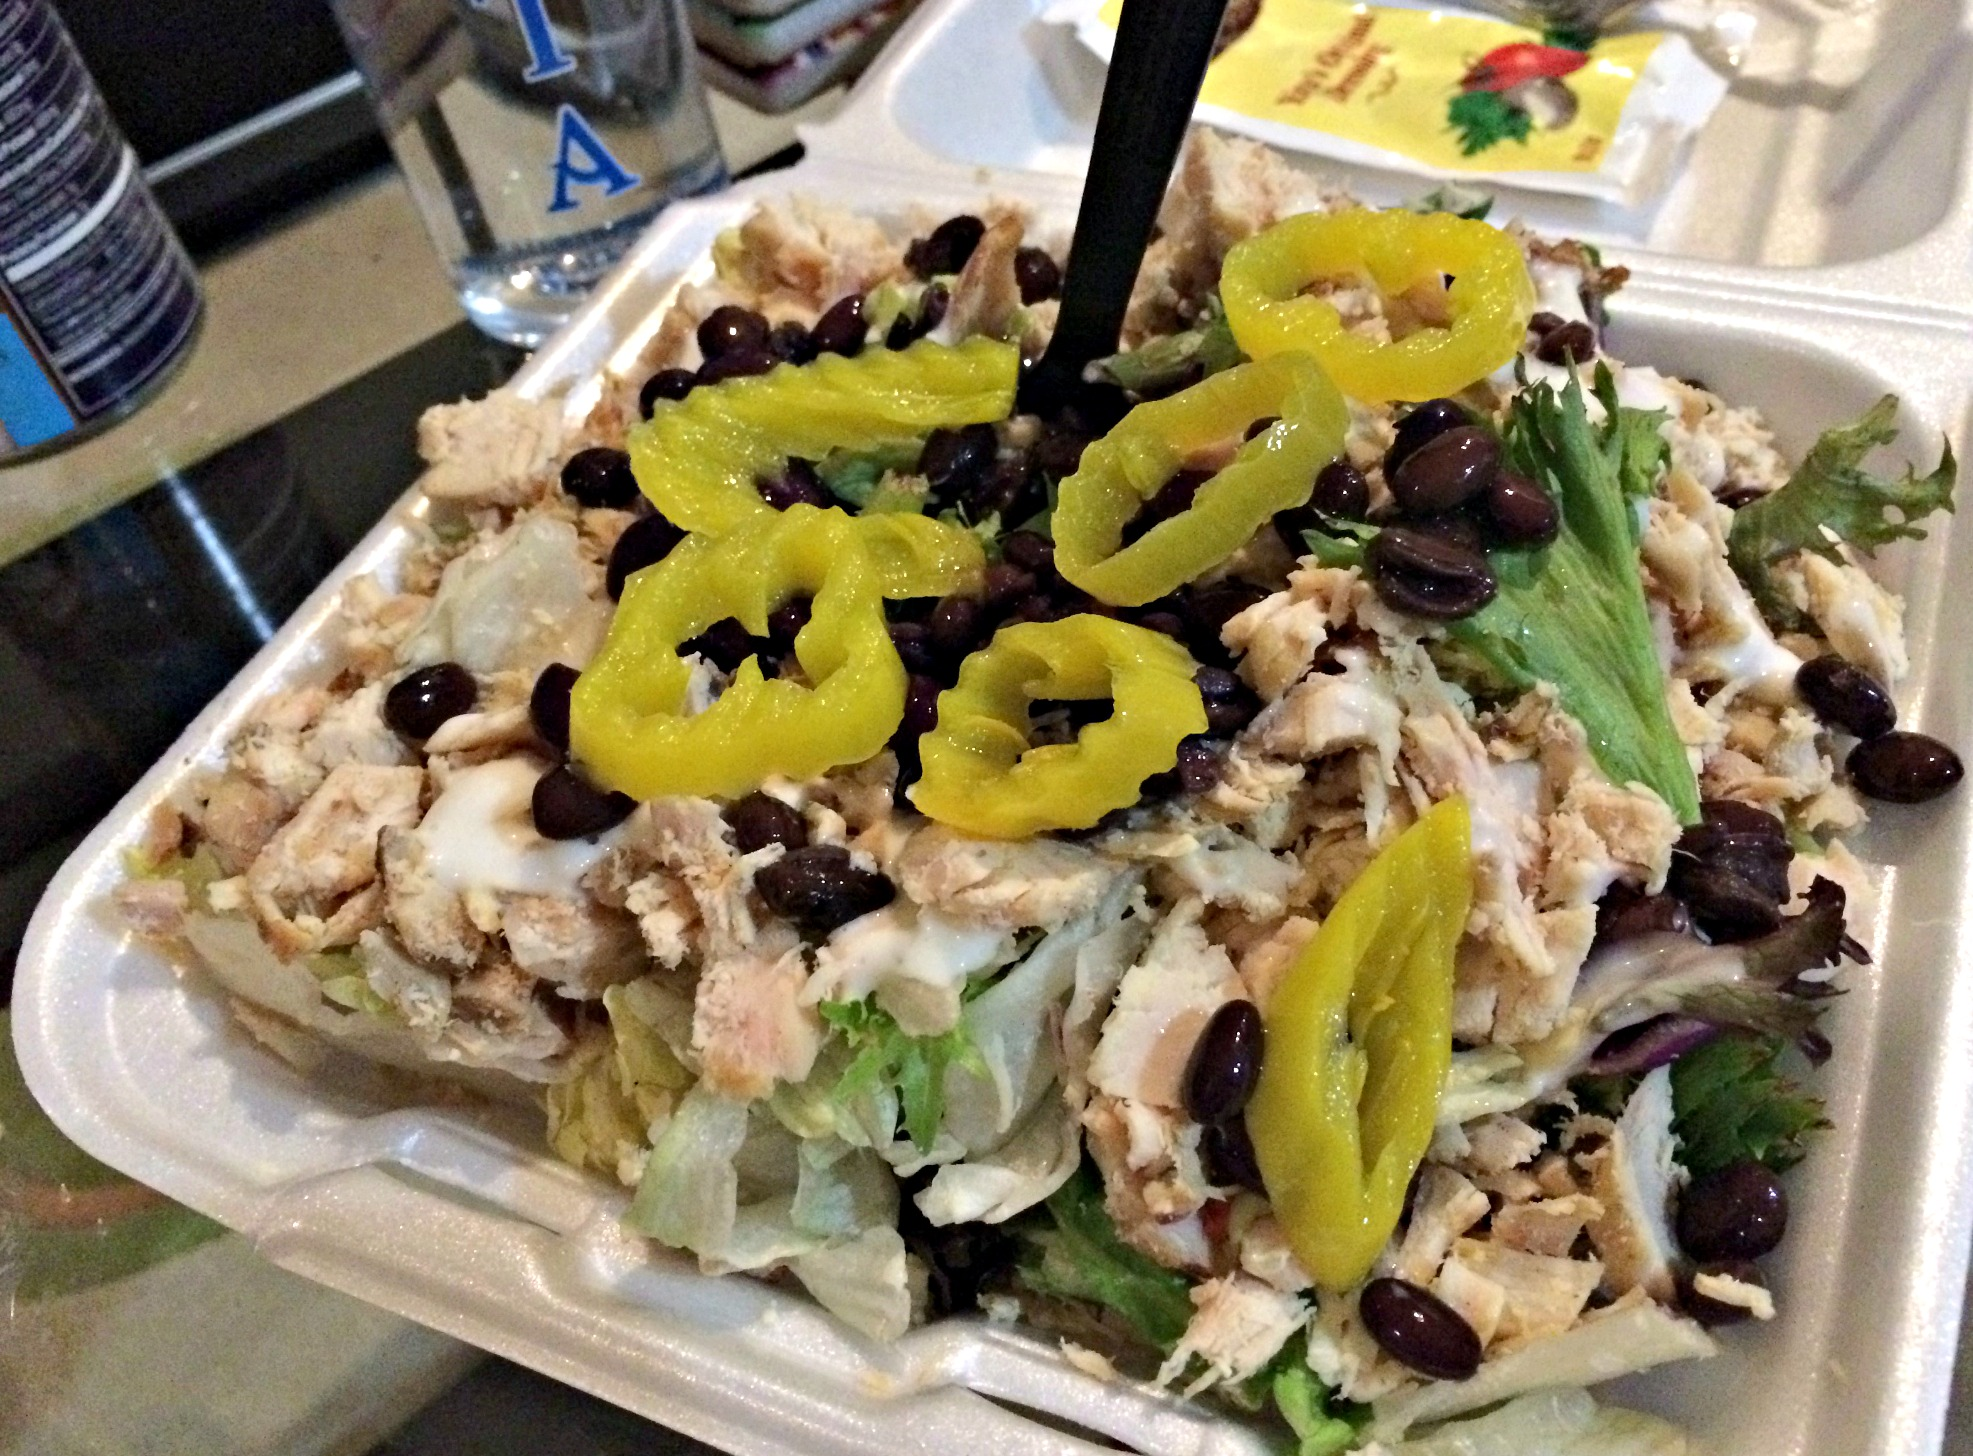 shredded chicken salad with beans and peppers